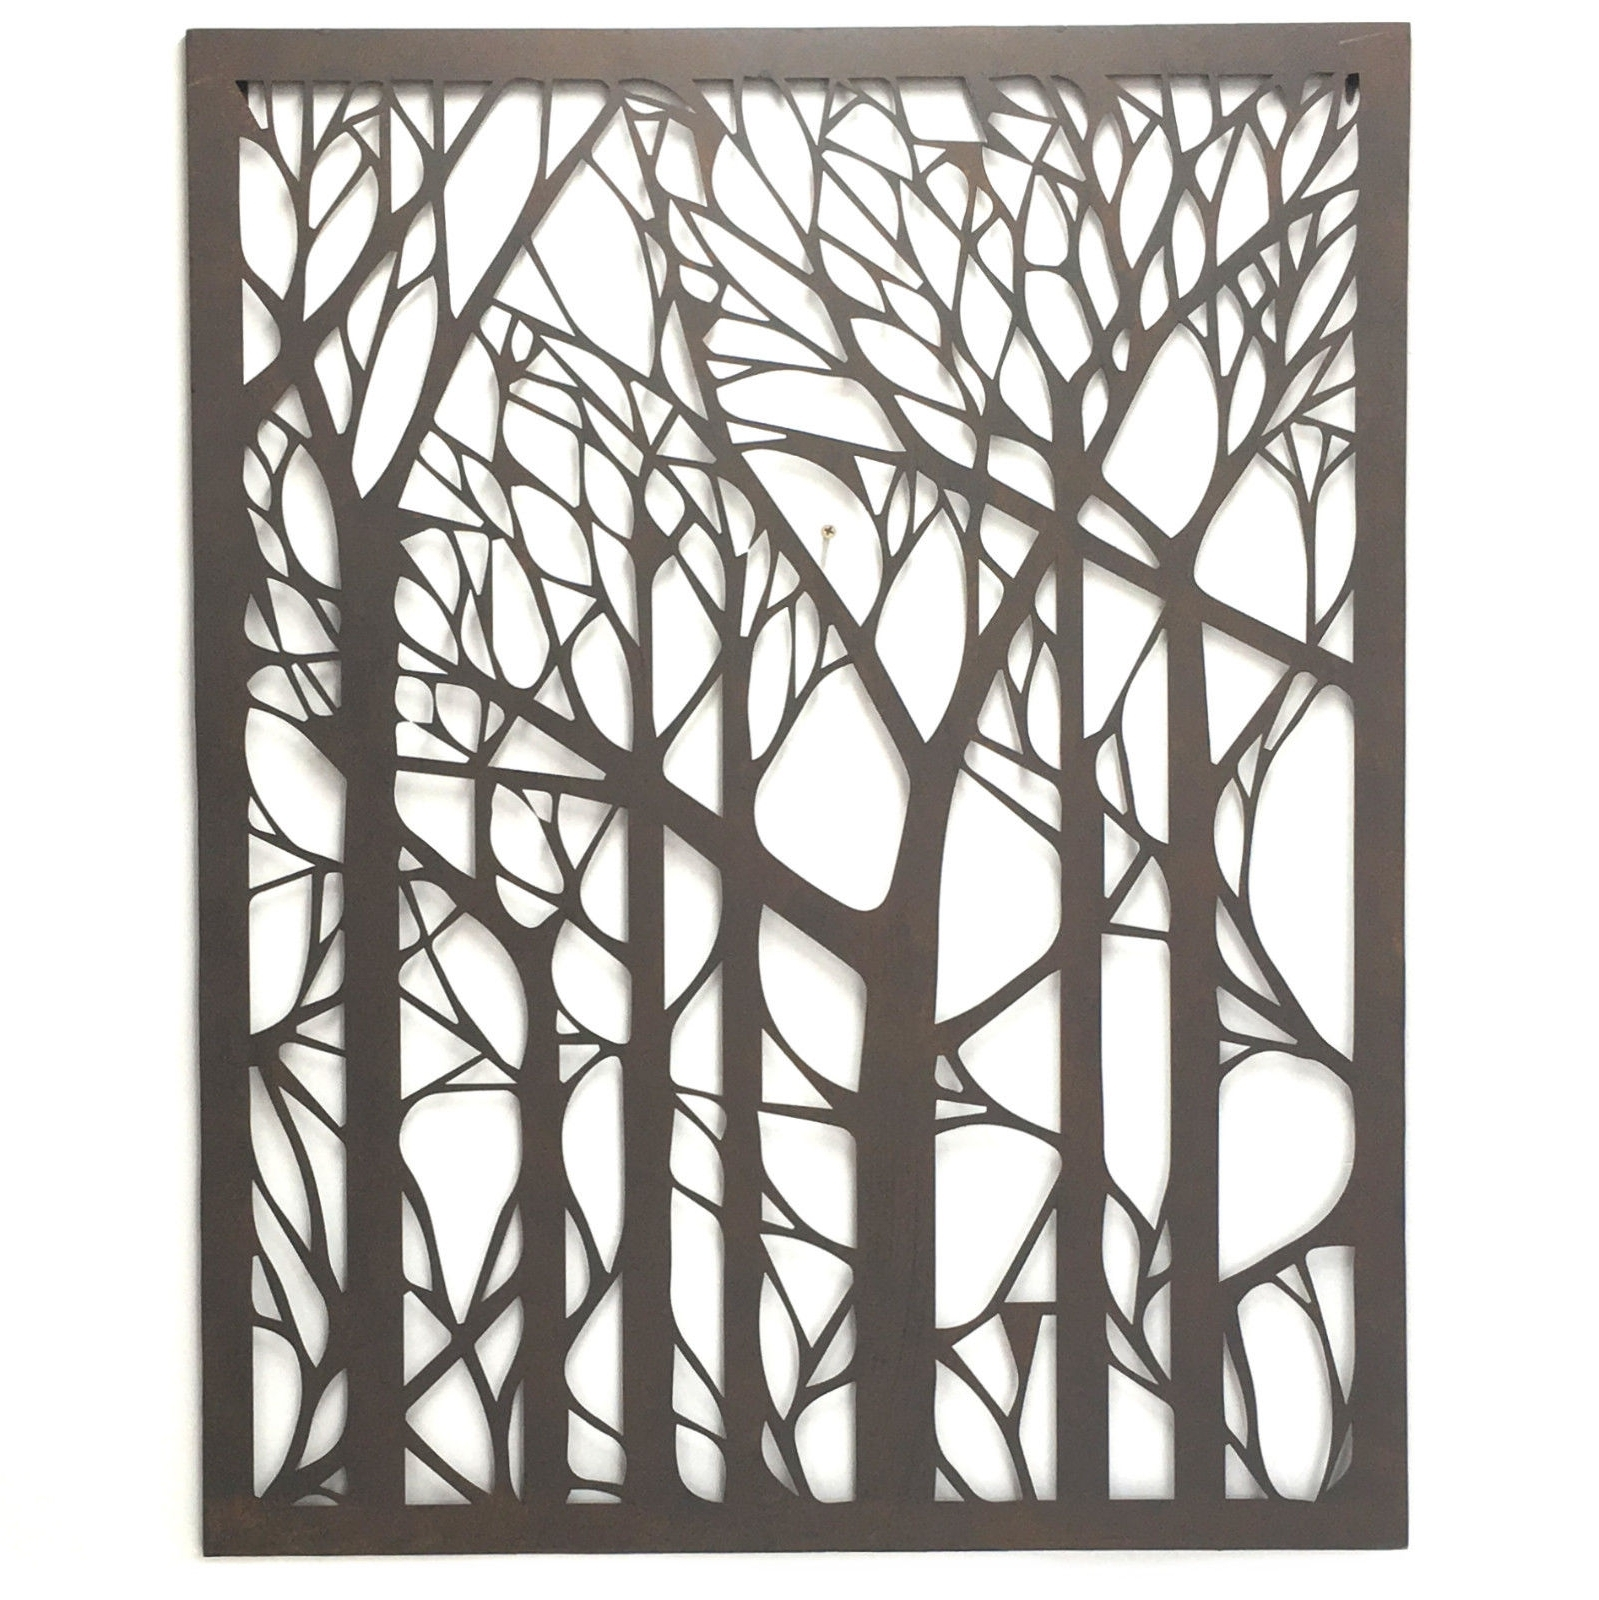 Most Recent Metal Wall Art Outdoor Use Regarding Wall Art Designs: Outdoor Wall Art Metal Tree Metal Wall Art (View 9 of 15)